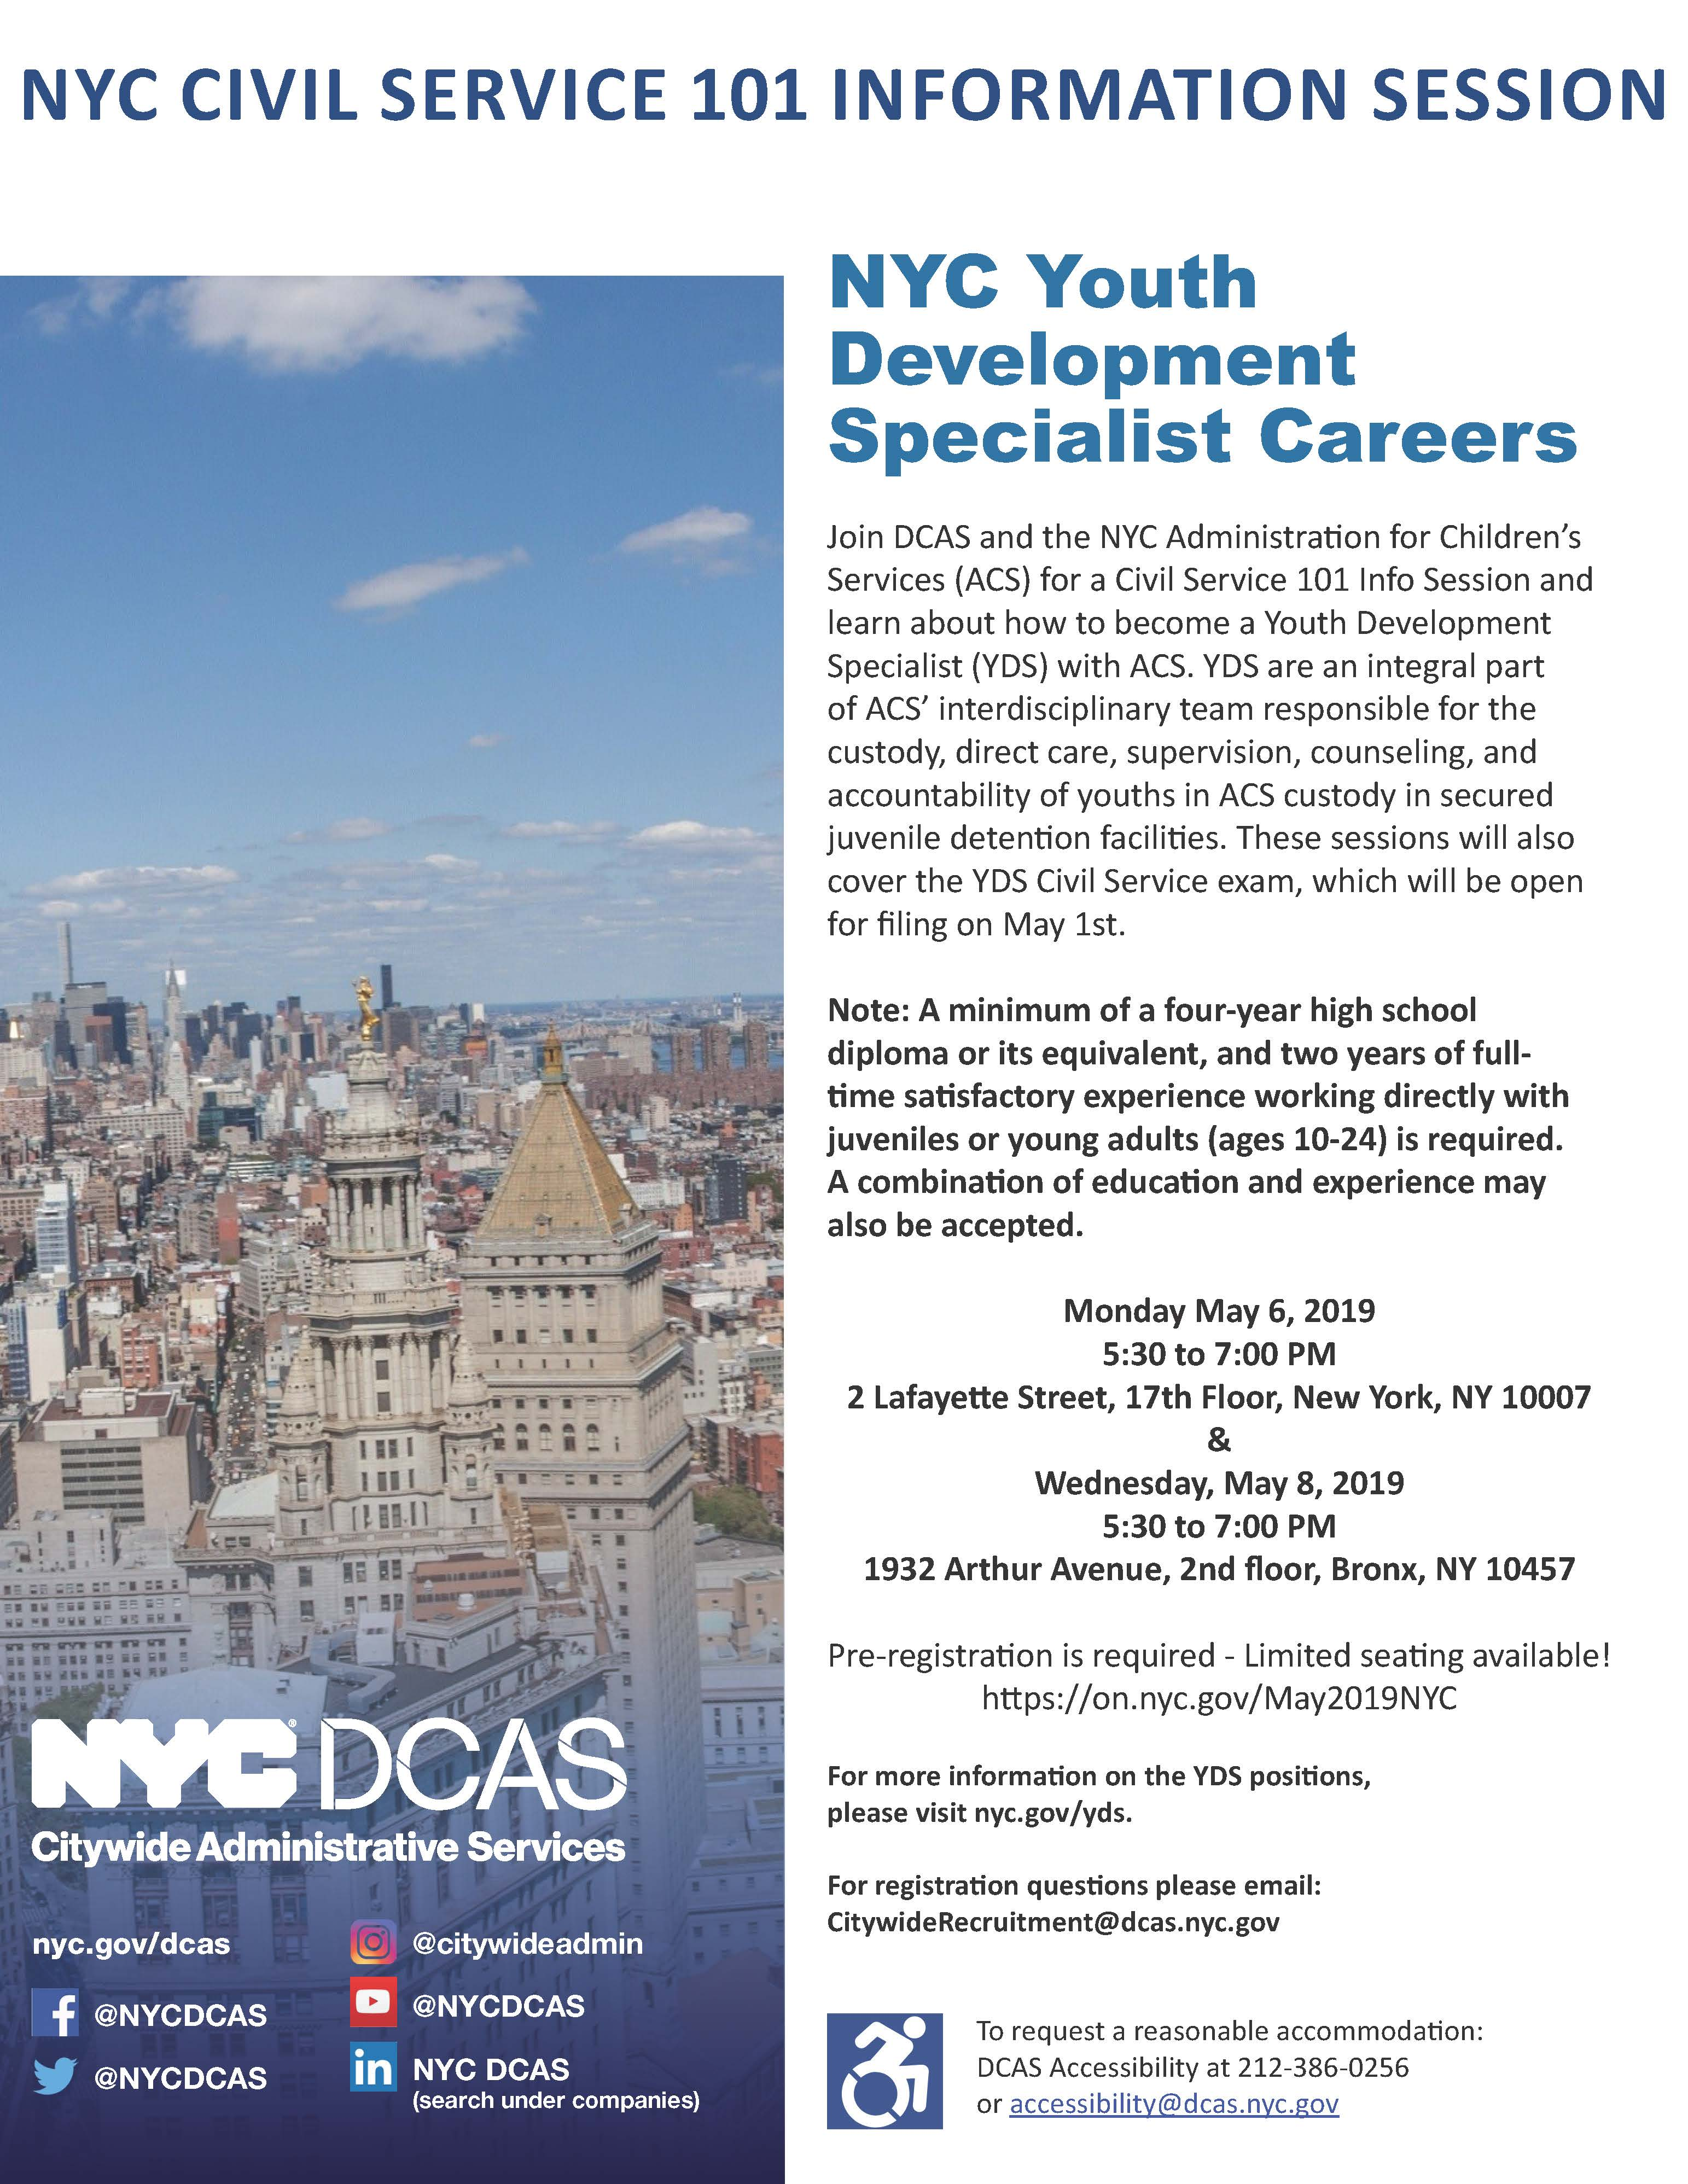 NYC DCAS Information Session - Monday May 6, 2019 and Wednesday May 8,2019